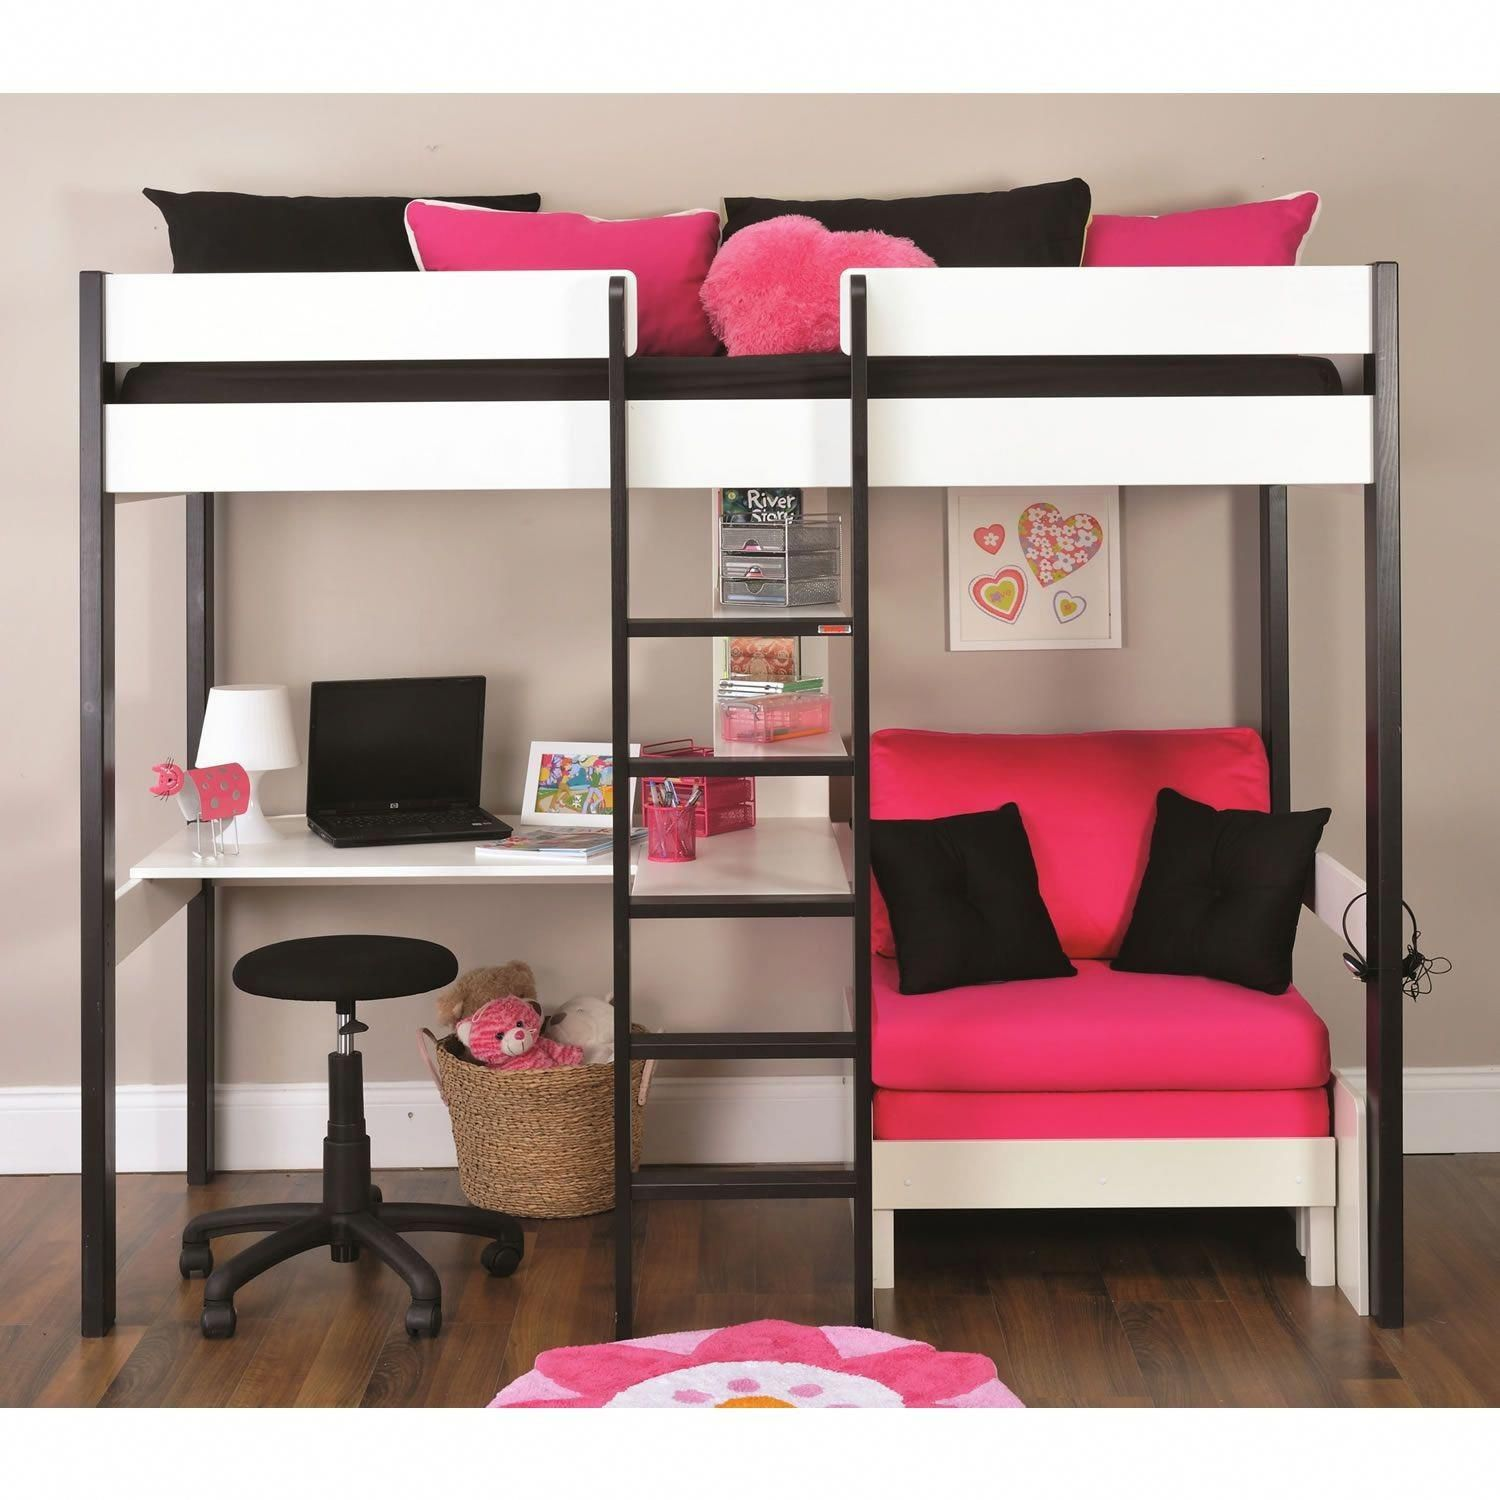 Pottery barn loft bed with desk  bunkbedswithdesks  Bunk Beds with Desks  Pinterest  Bed Bunk bed